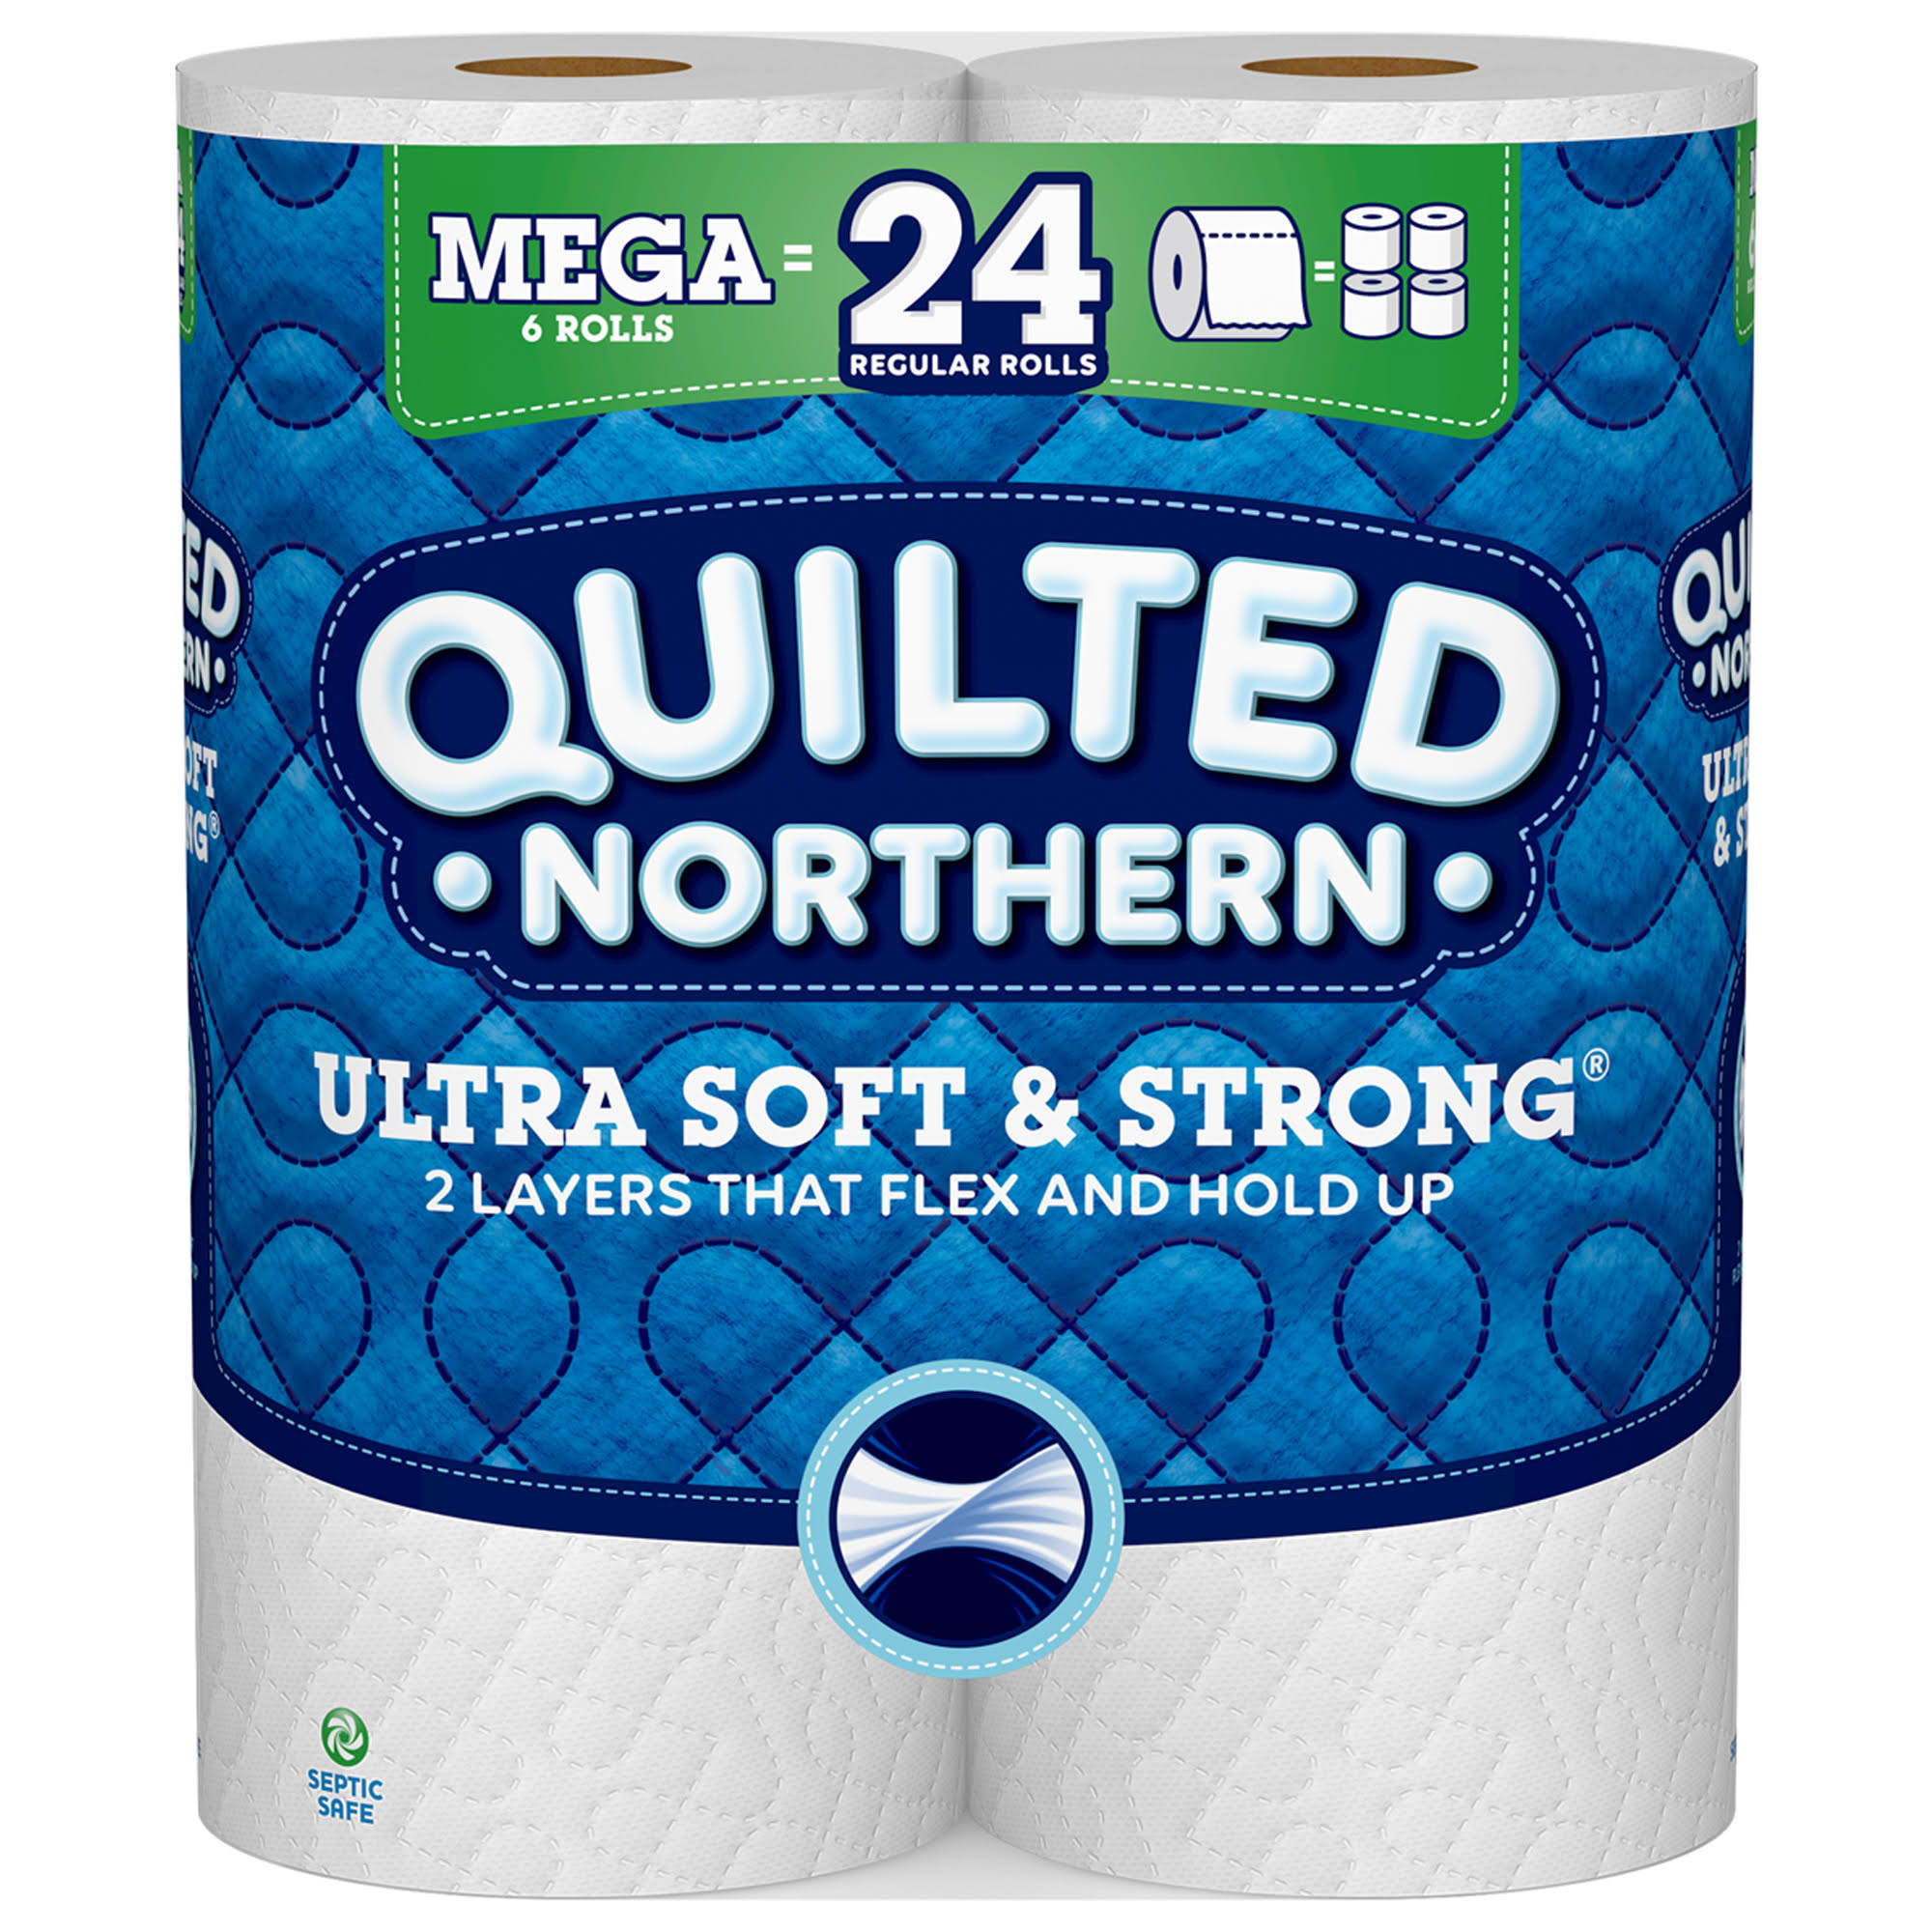 Quilted Northern Ultra Soft and Strong Toilet Paper